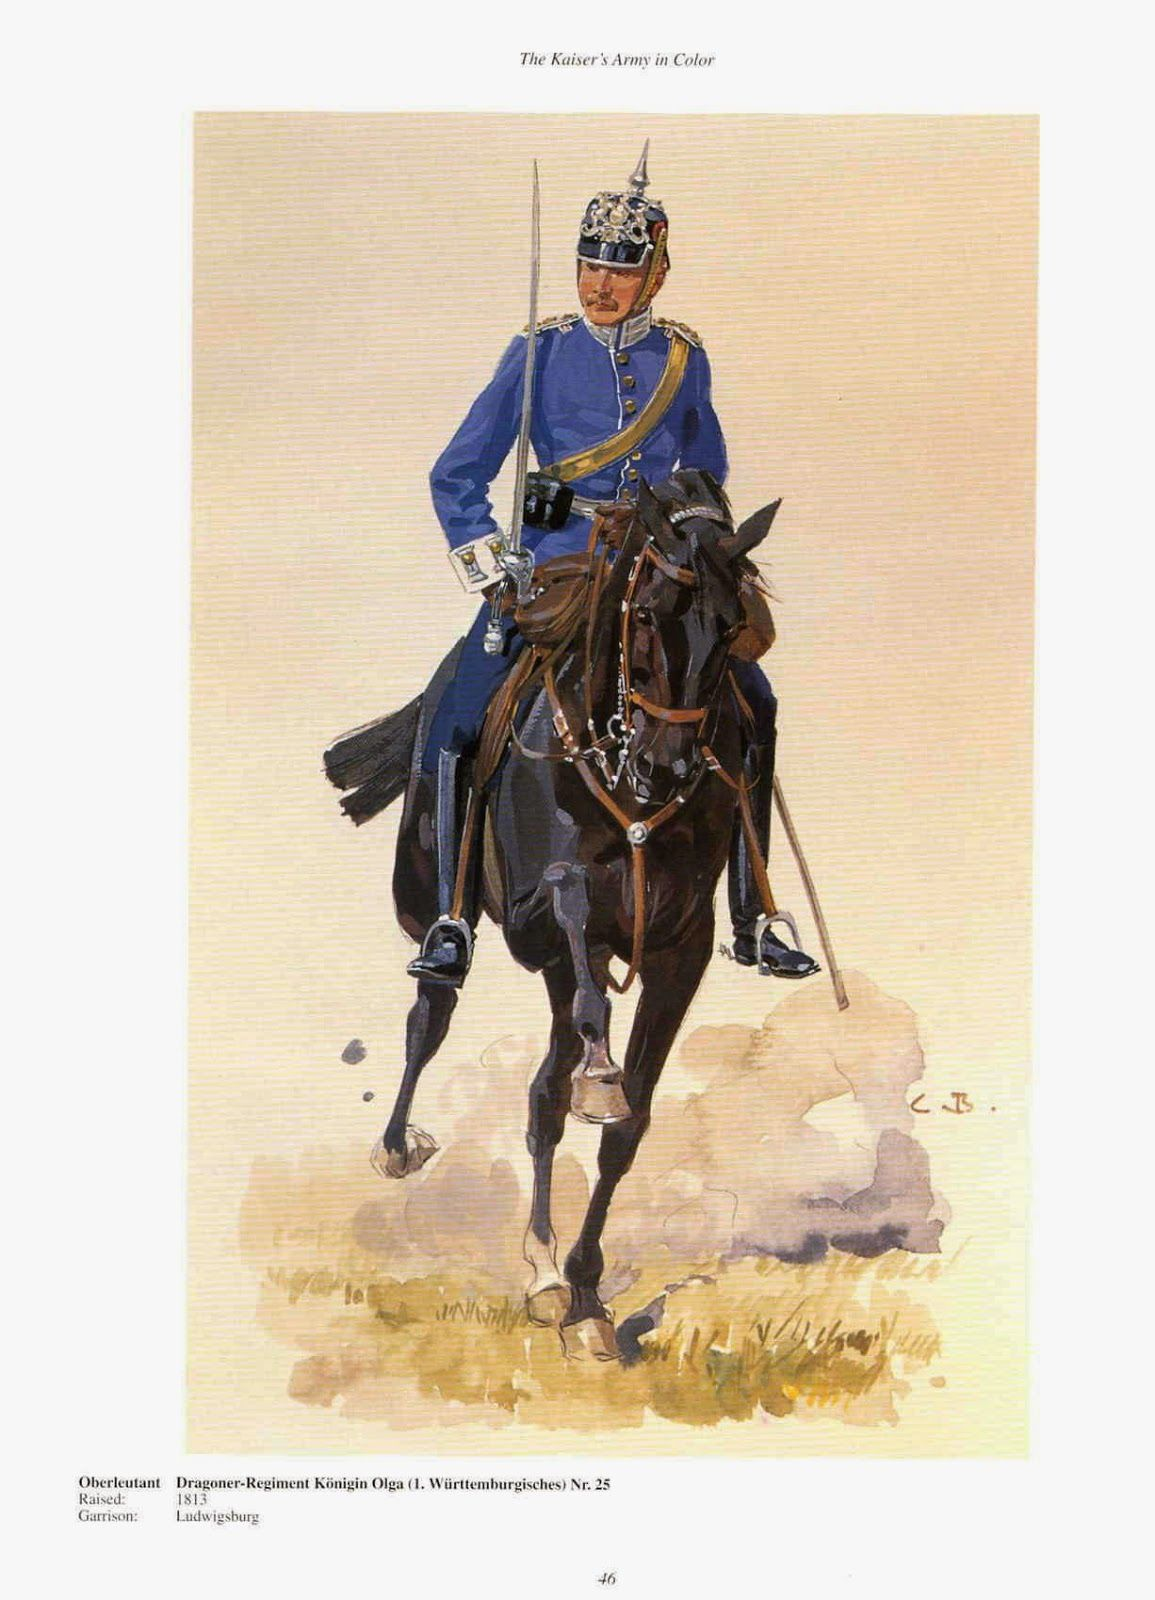 German 25th Dragoon Regiment Konigin Olga1st Wurttemburg